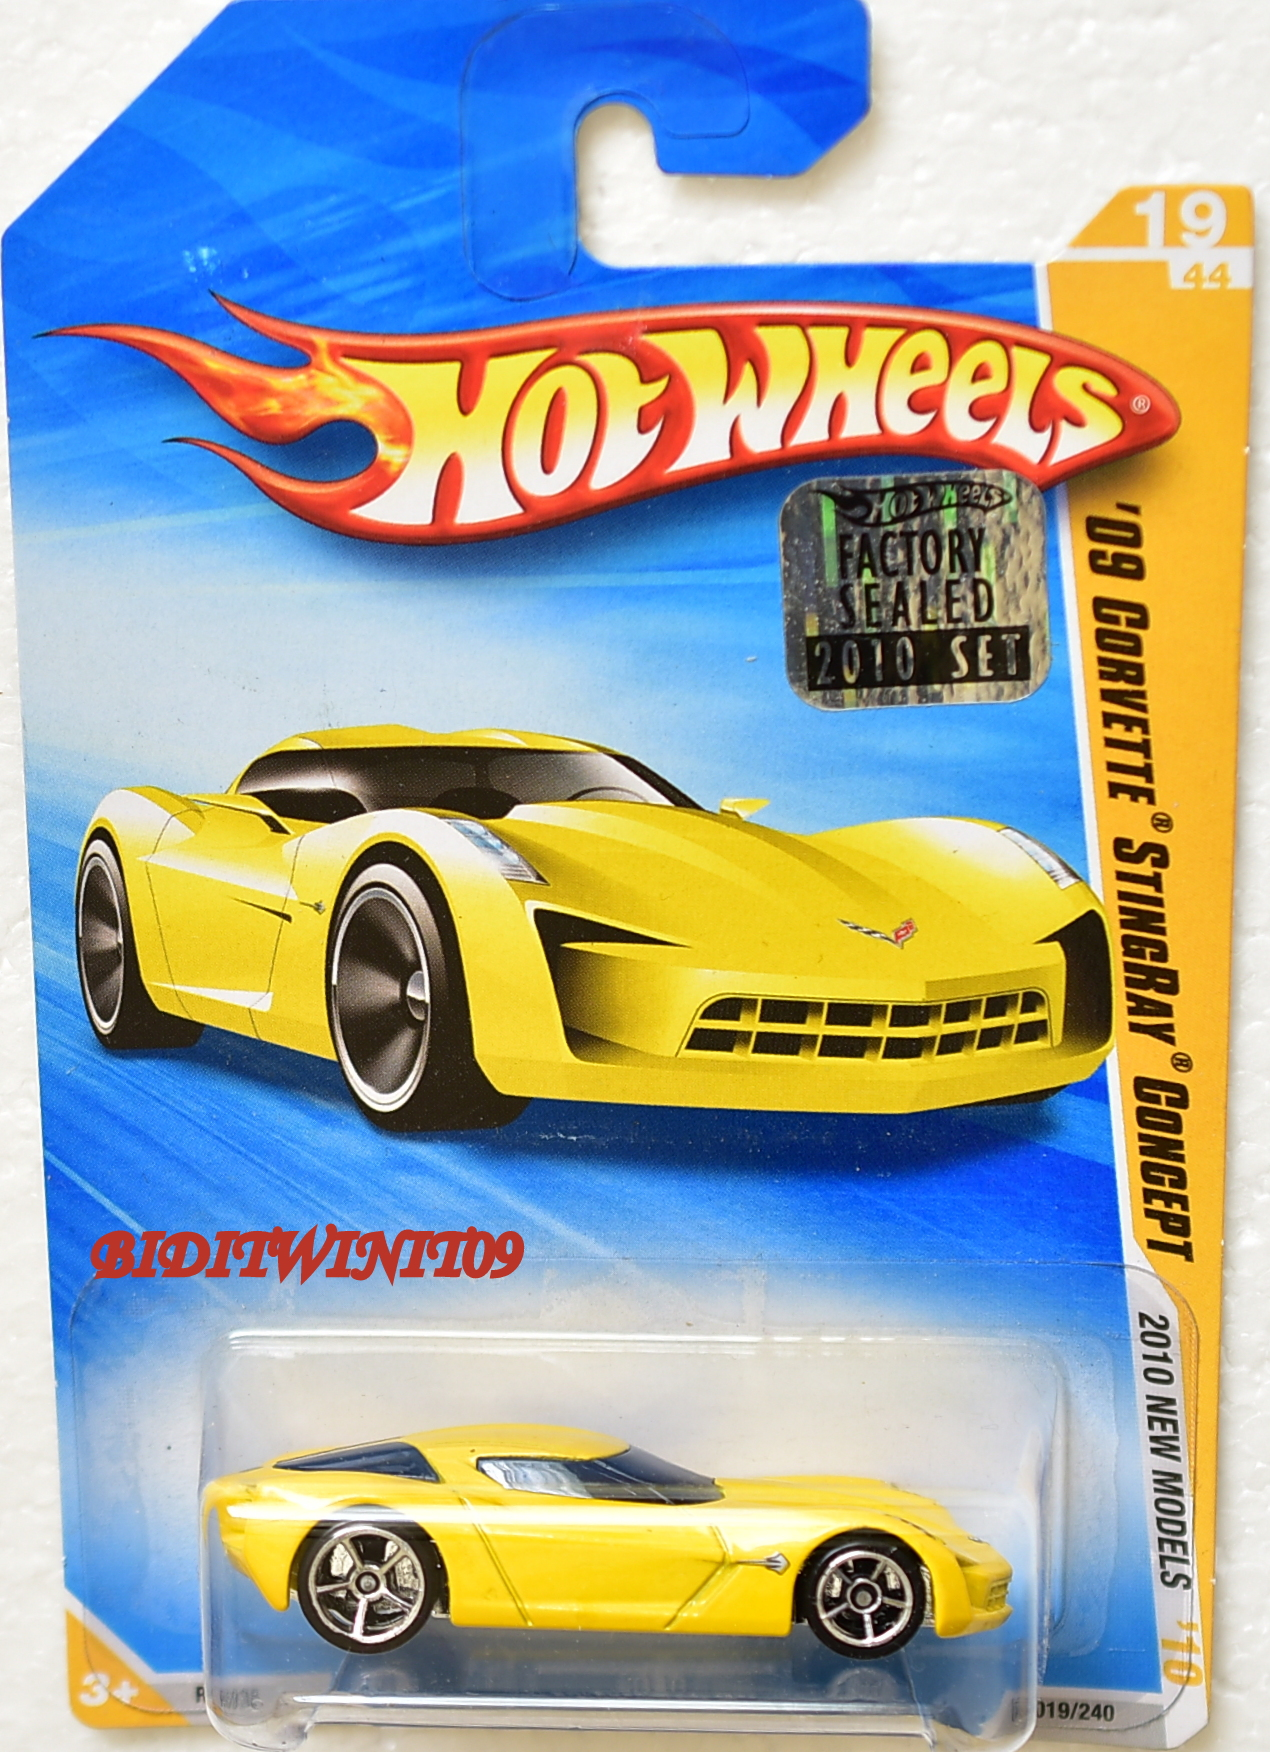 HOT WHEELS 2010 '09 CORVETTE STINGRAY CONCEPT #19/44 YELLOW FACTORY SEALED